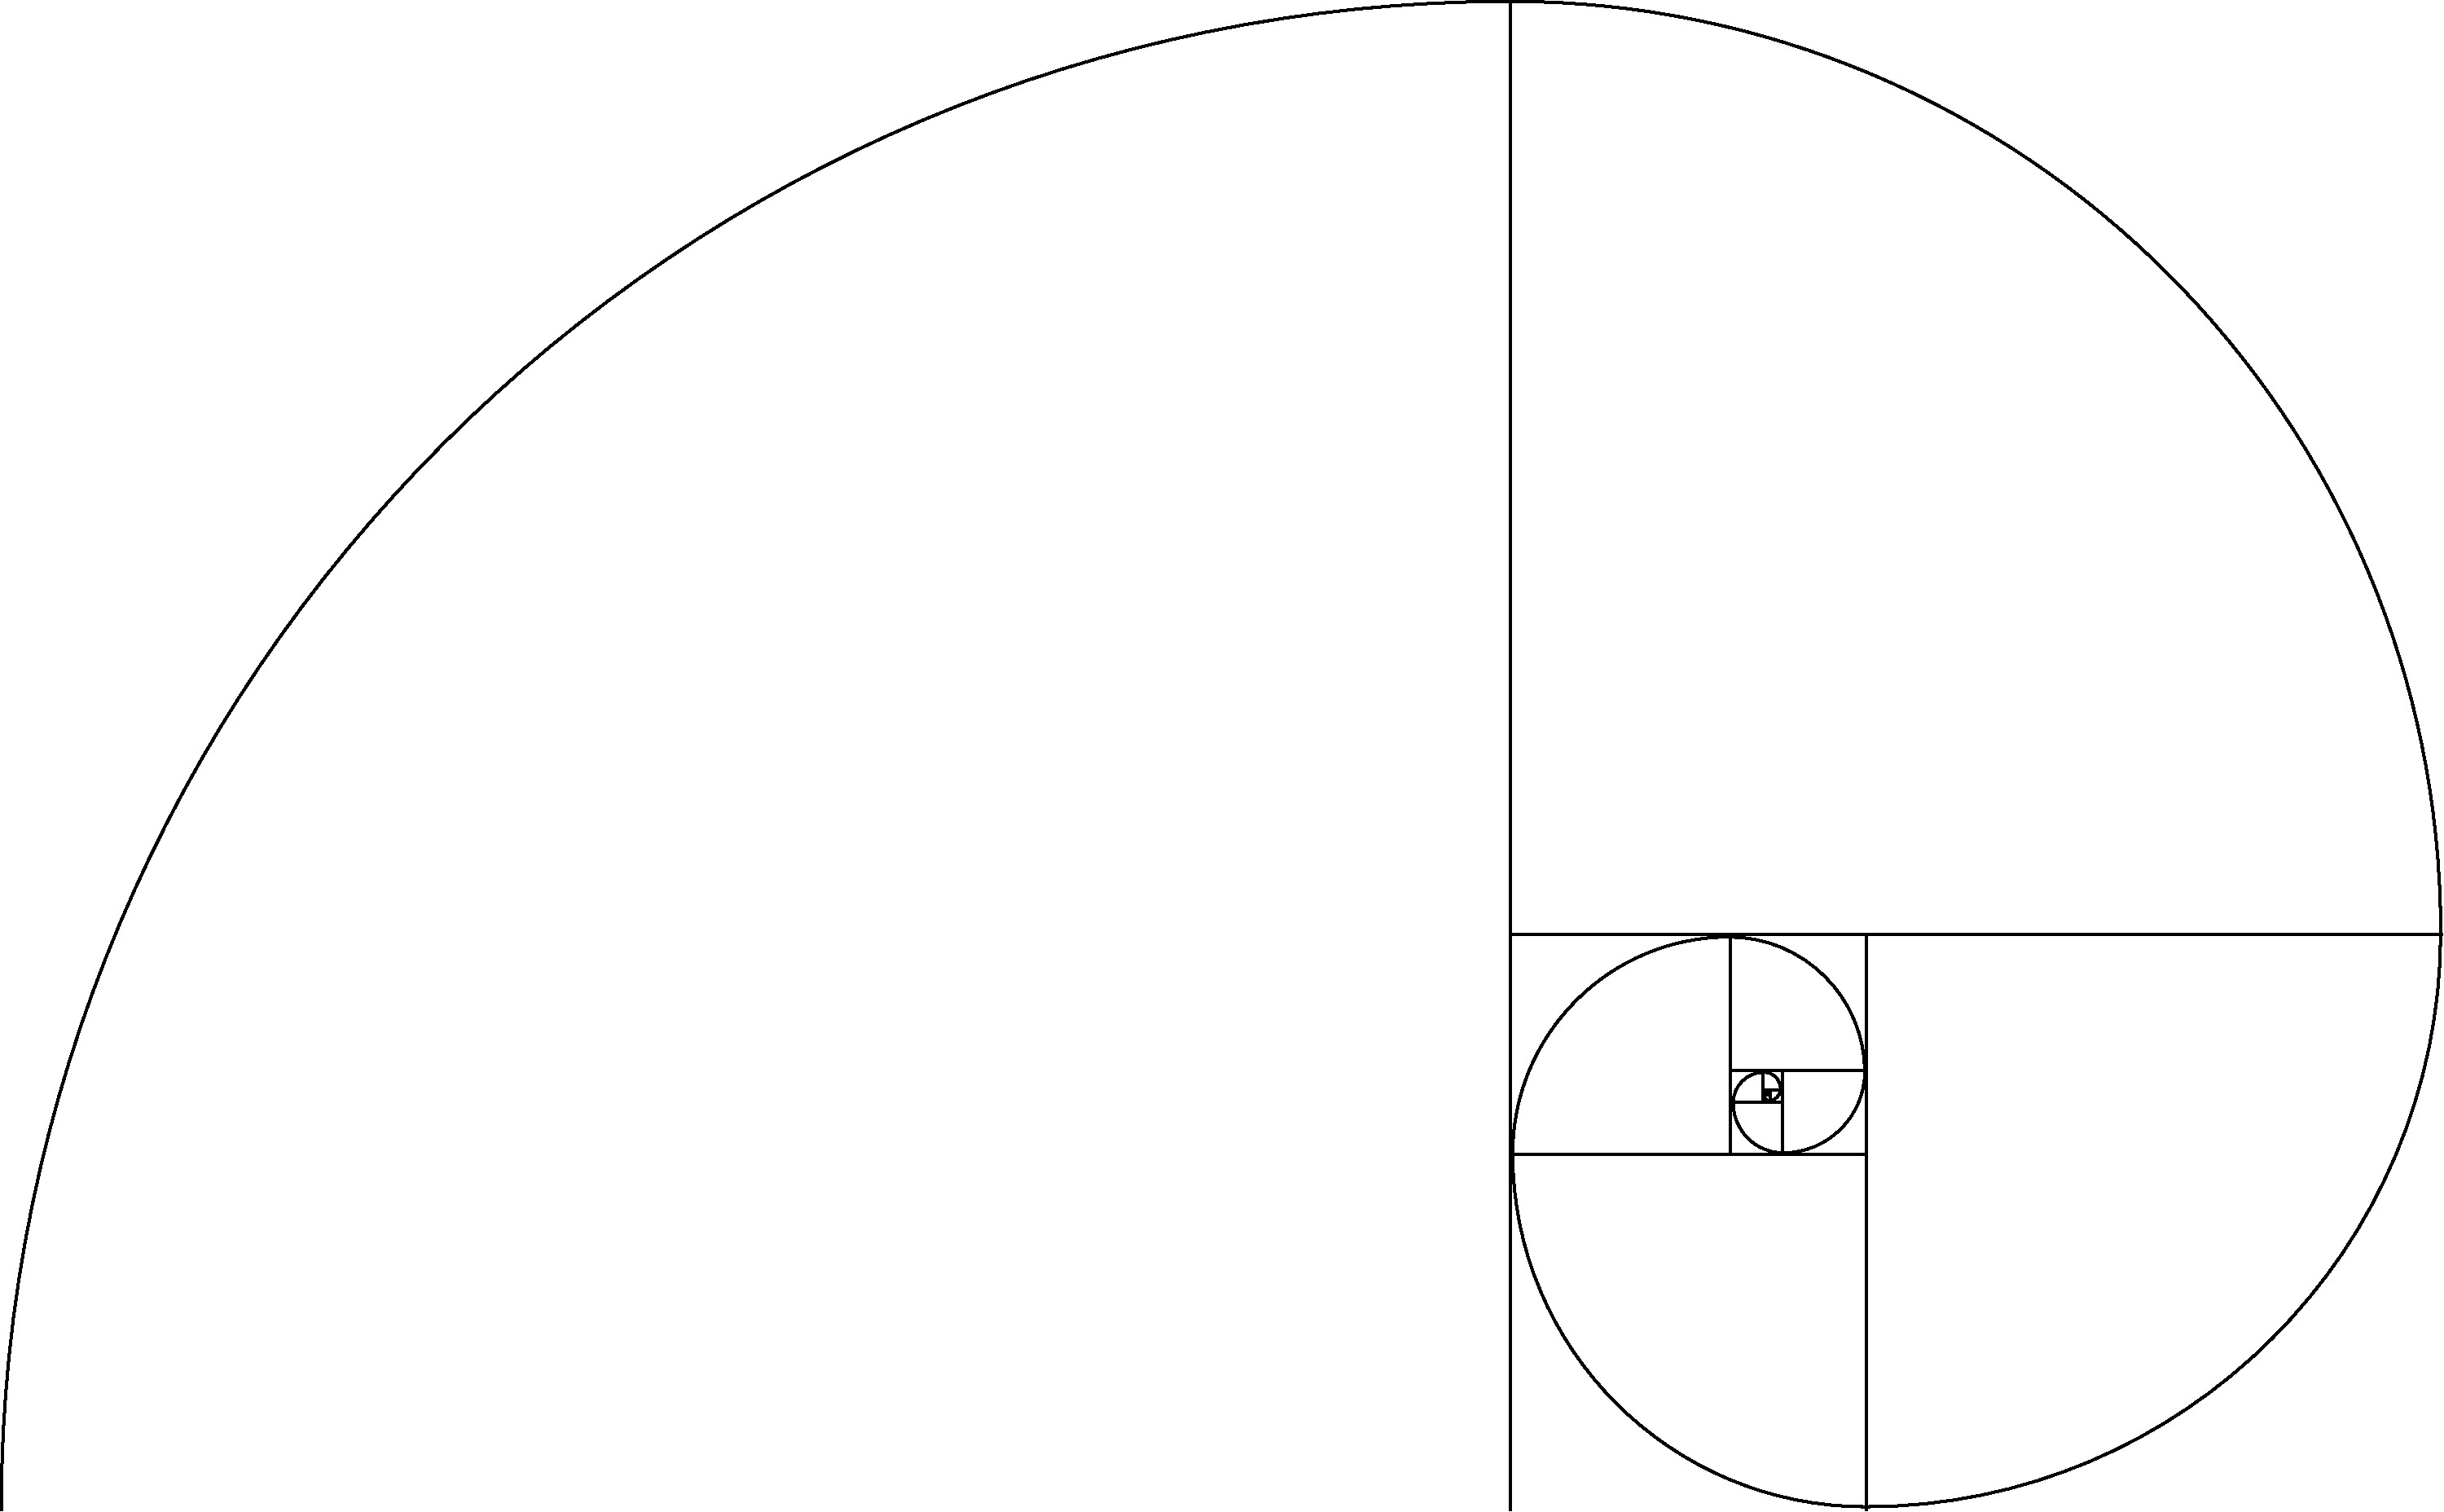 Golden Ratio Design Template the Golden Ratio Png Templates David Hodder